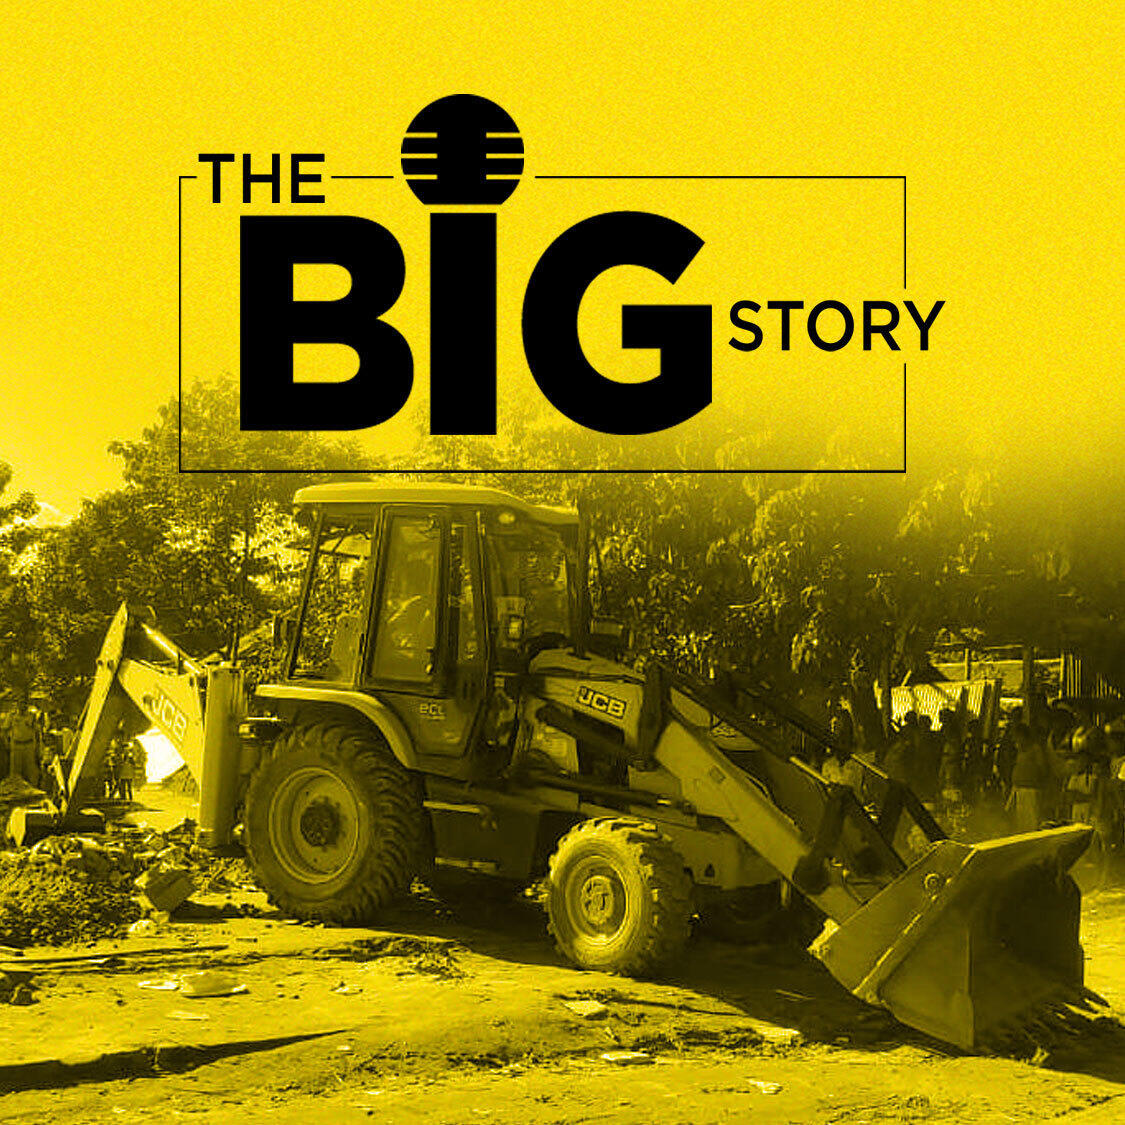 791: What Does Assam Evictions Say About Lack of Social Security for the Landless?